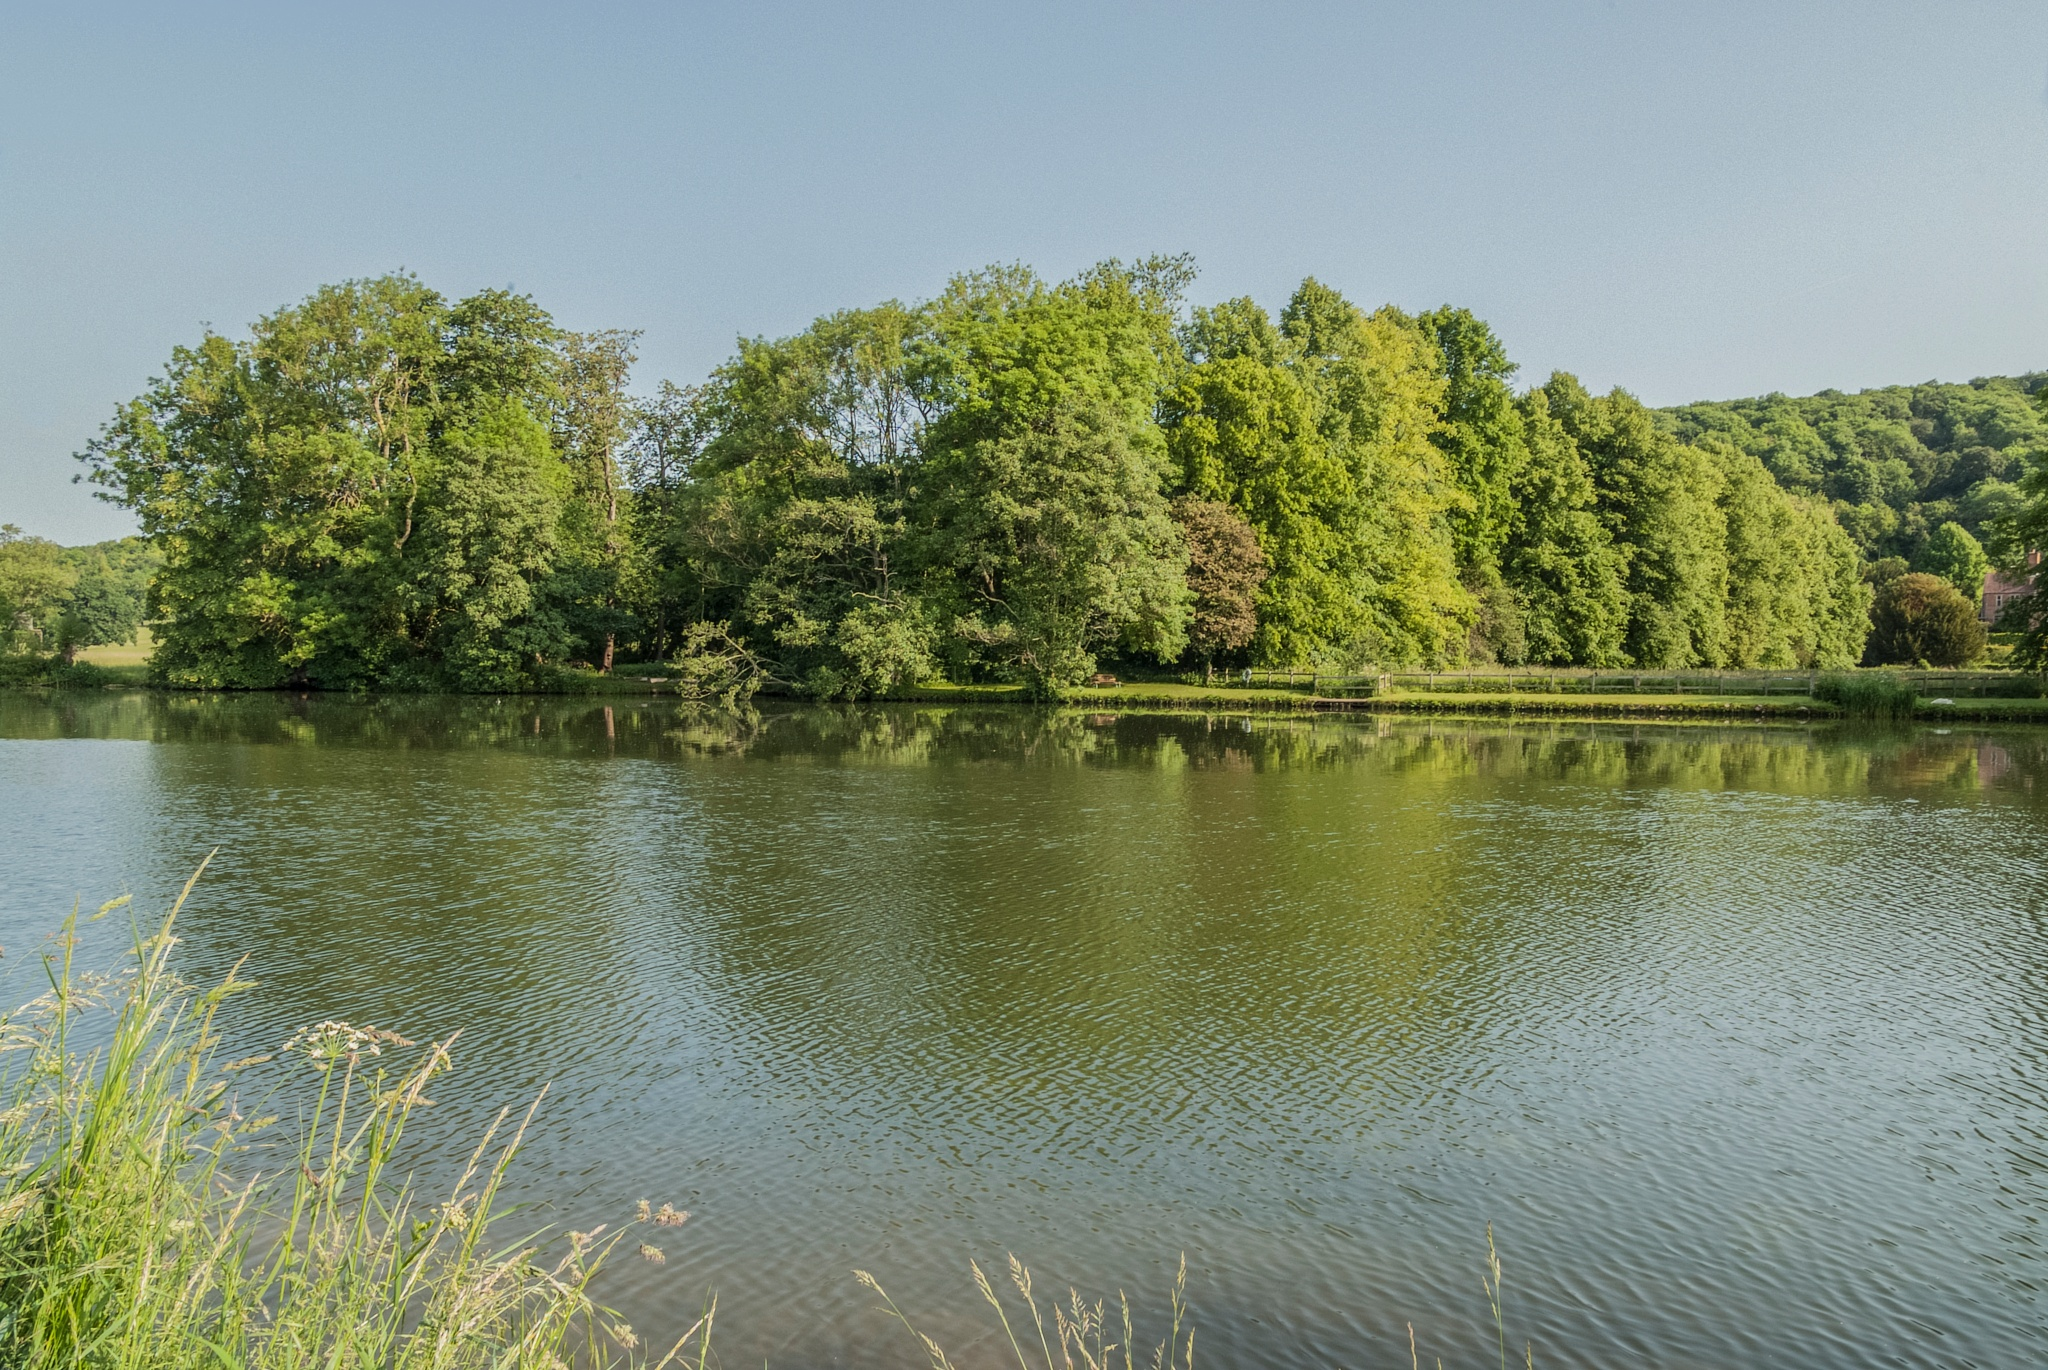 Thames at Hardwick by Jim Hellier